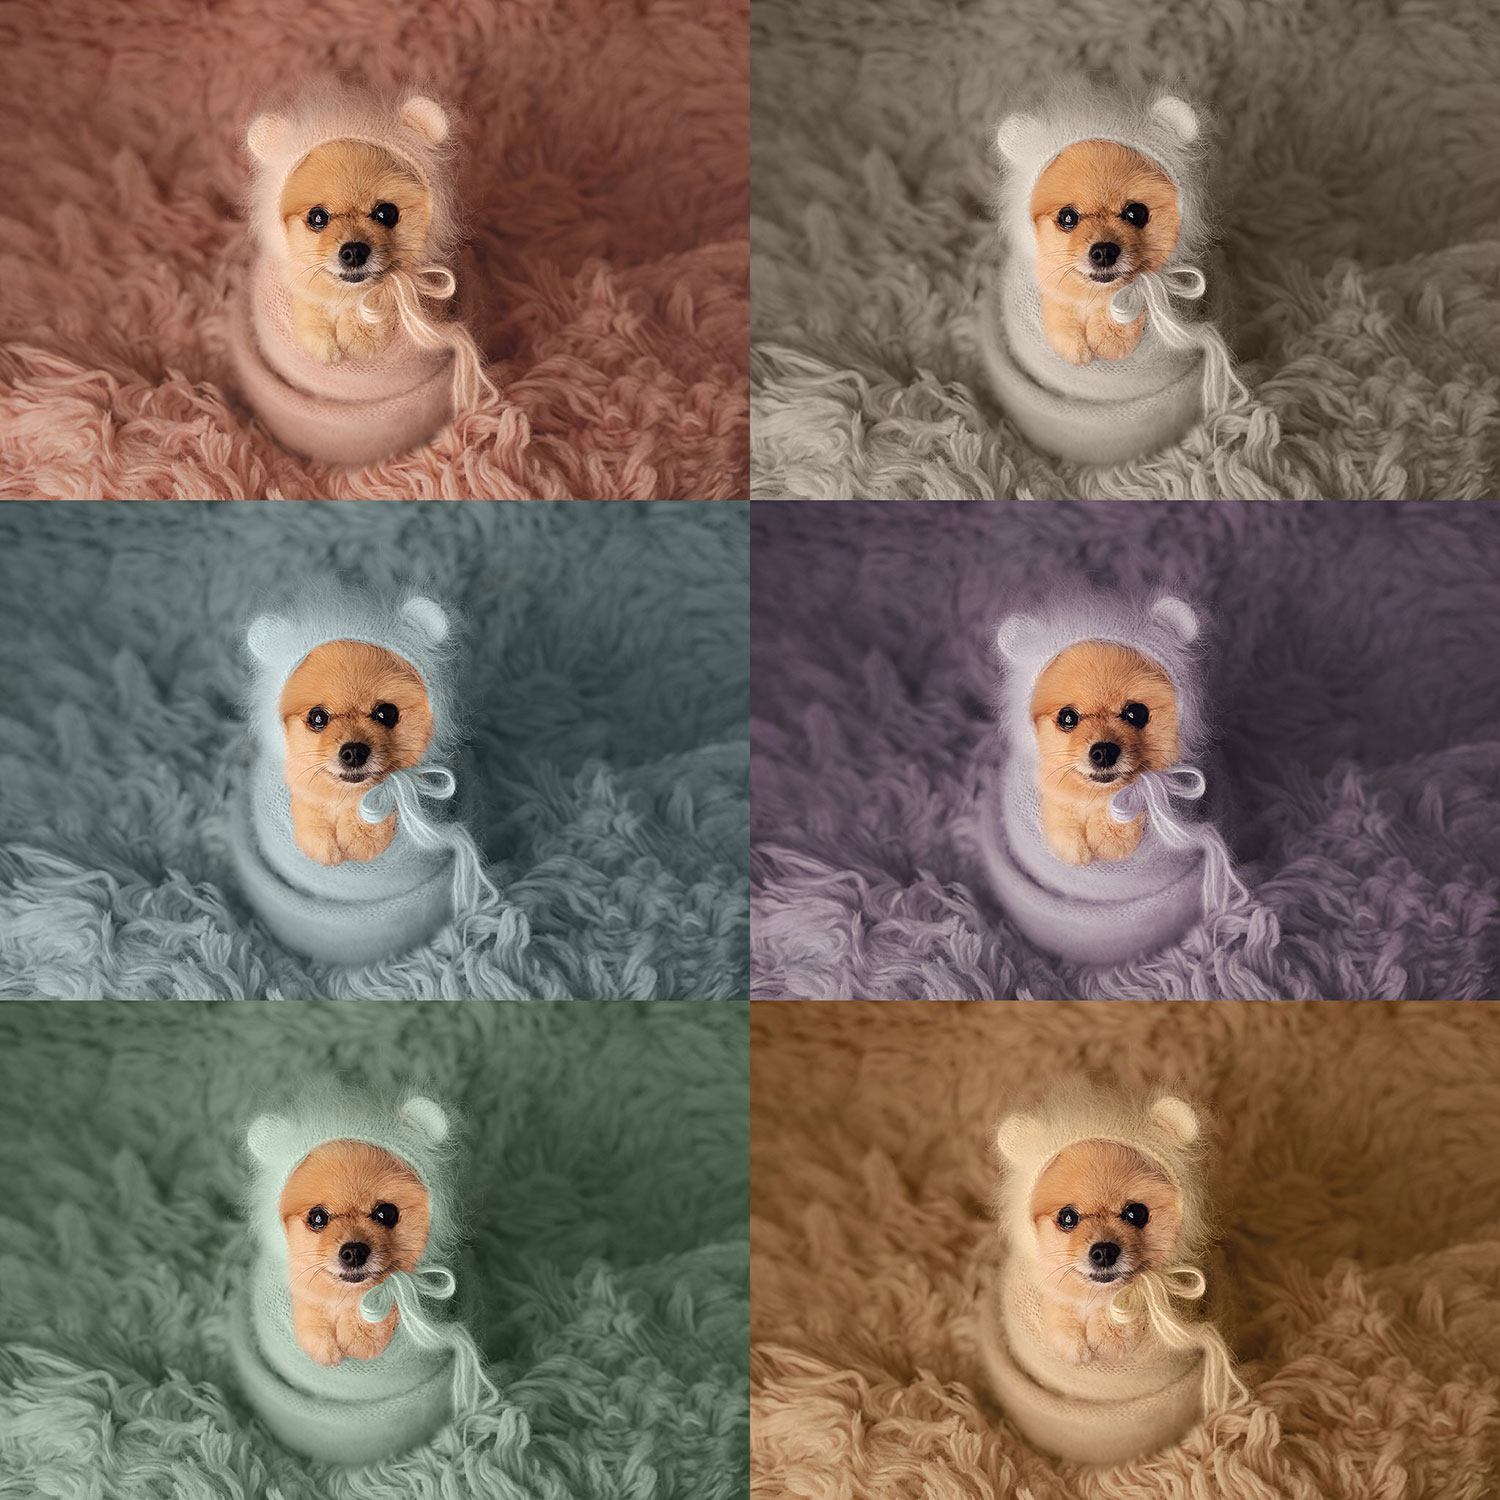 color changing action used on photo of dog